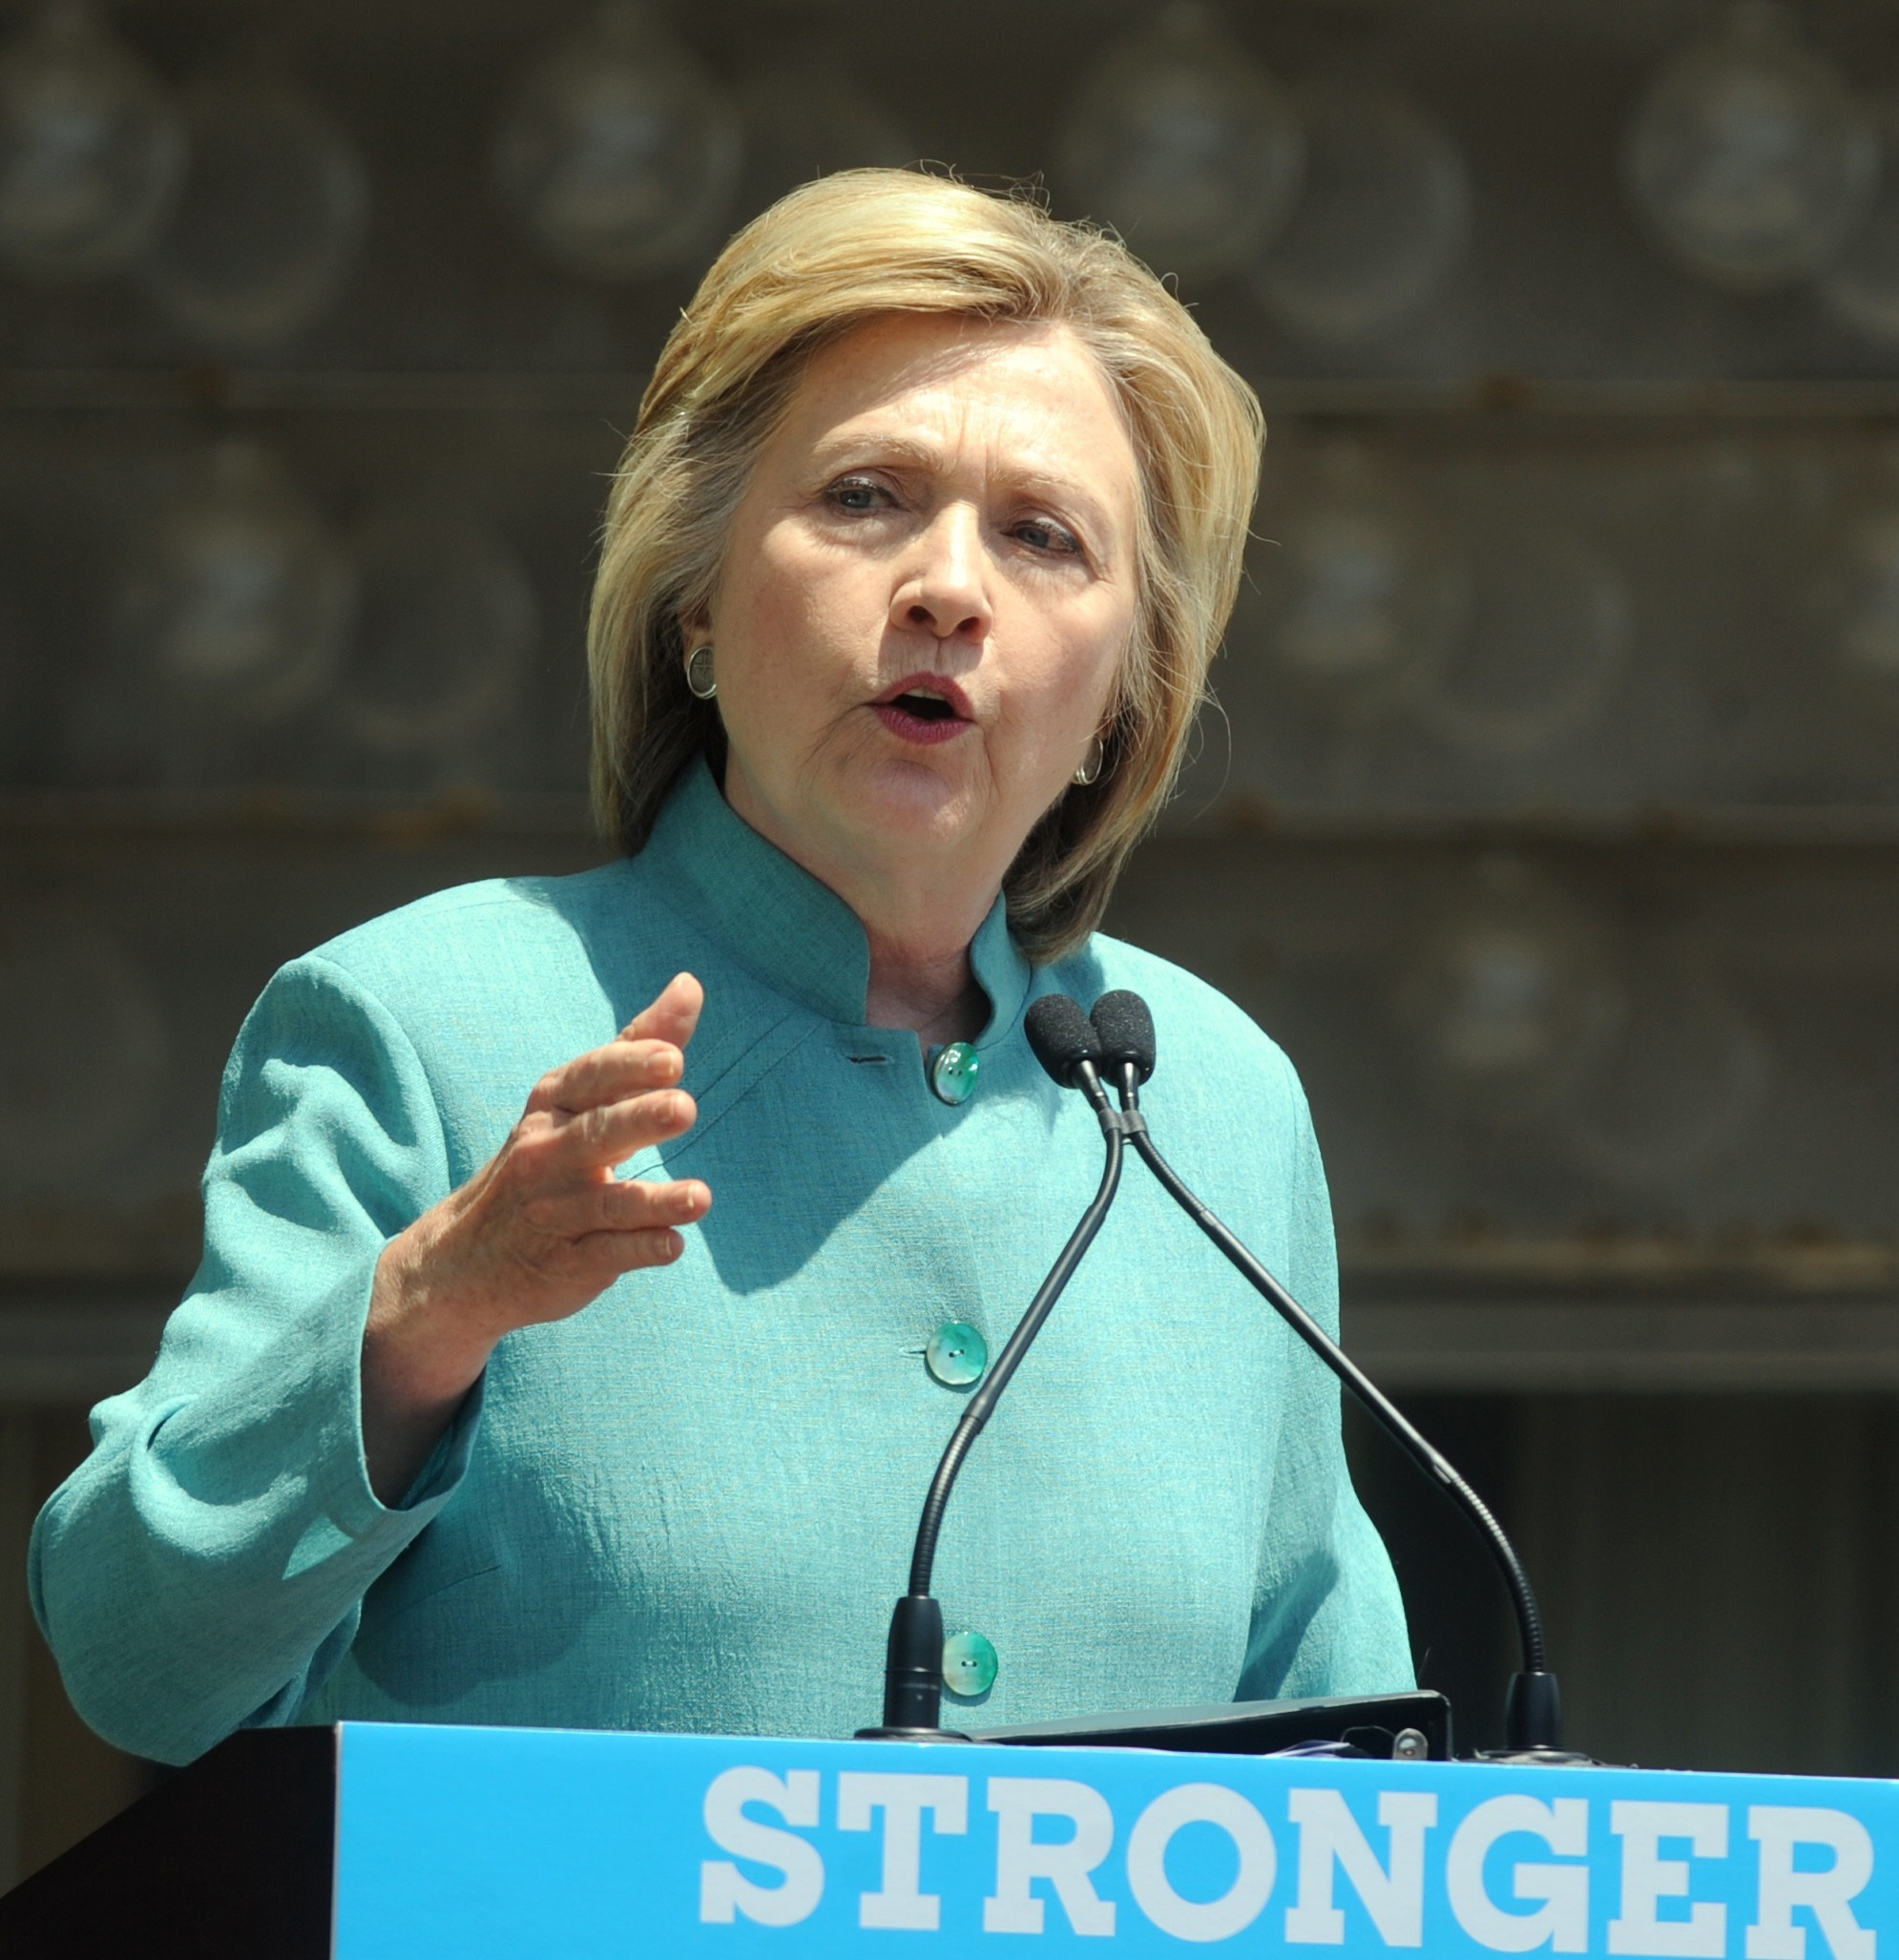 Picture Shows: Hillary Clinton July 06, 2016 Presumptive Democratic presidential nominee Hillary Clinton speaks at the podium at Boardwalk Hall Arena in Atlantic City, New Jersey. Non-Exclusive UK RIGHTS ONLY Pictures by : FameFlynet UK © 2016 Tel : +44 (0)20 3551 5049 Email : info@fameflynet.uk.com